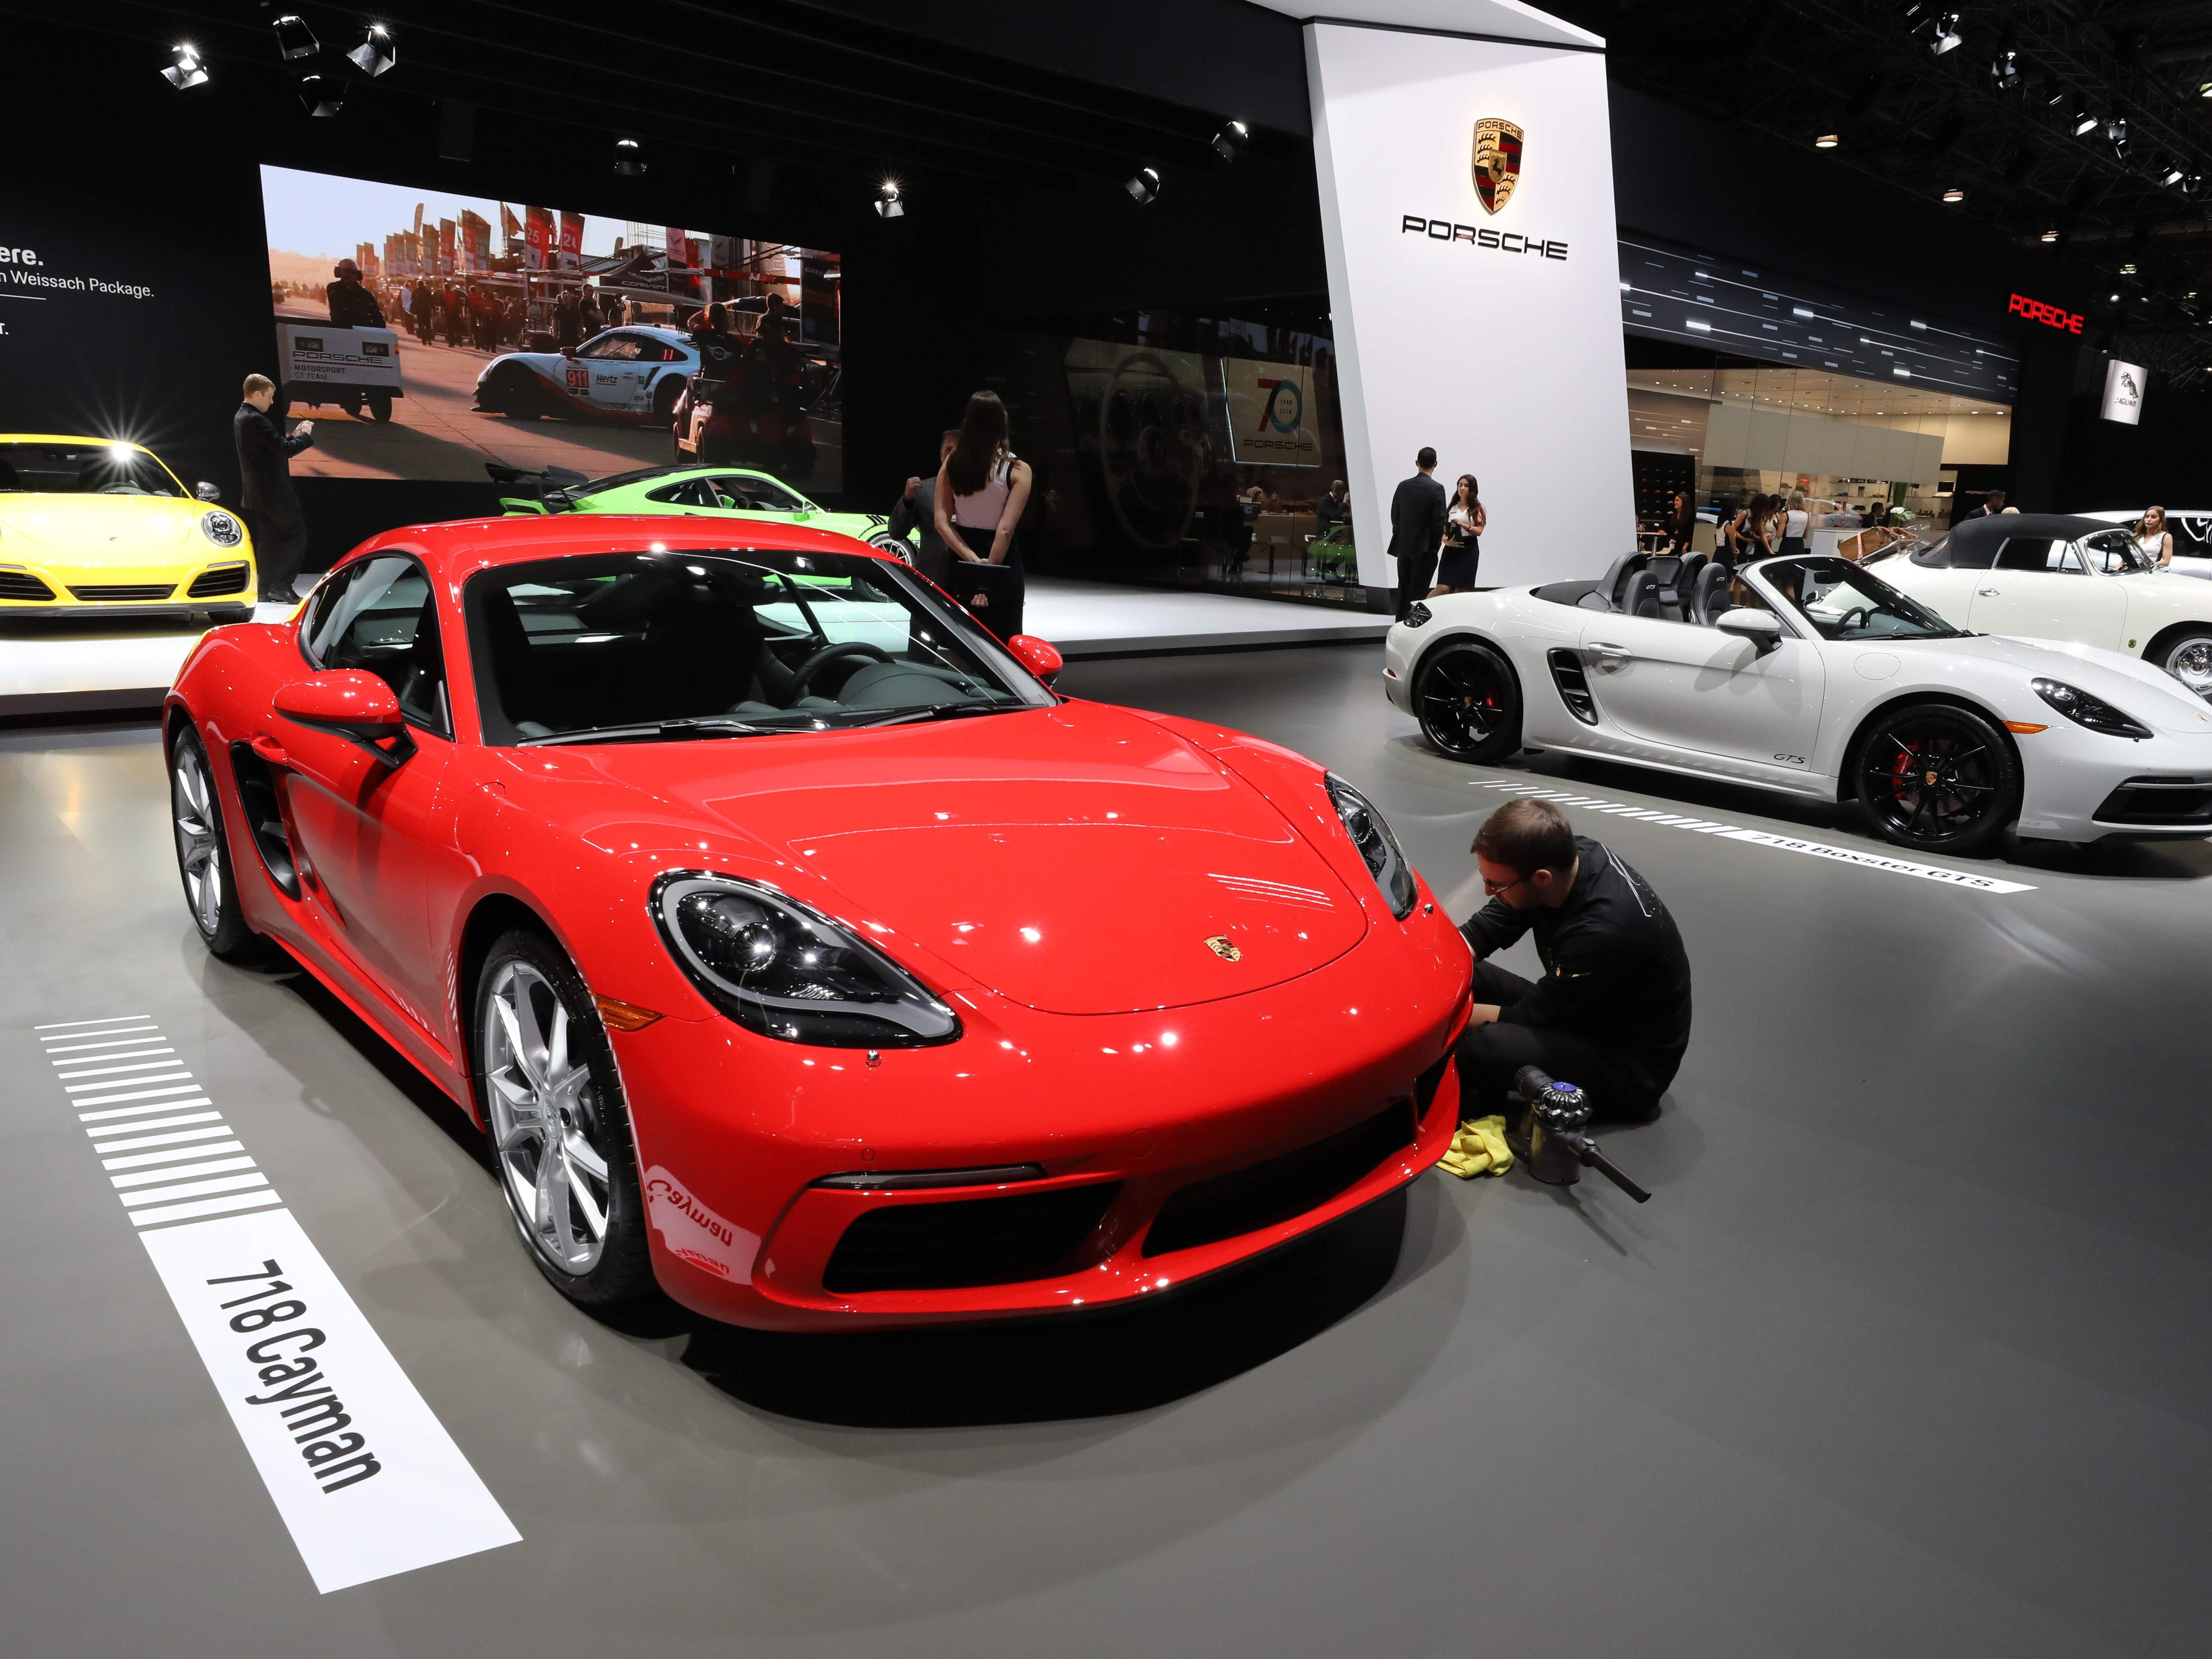 Another Volkswagen brand, Porsche, ranked in 52nd place at $11 billion, up 6 percent.